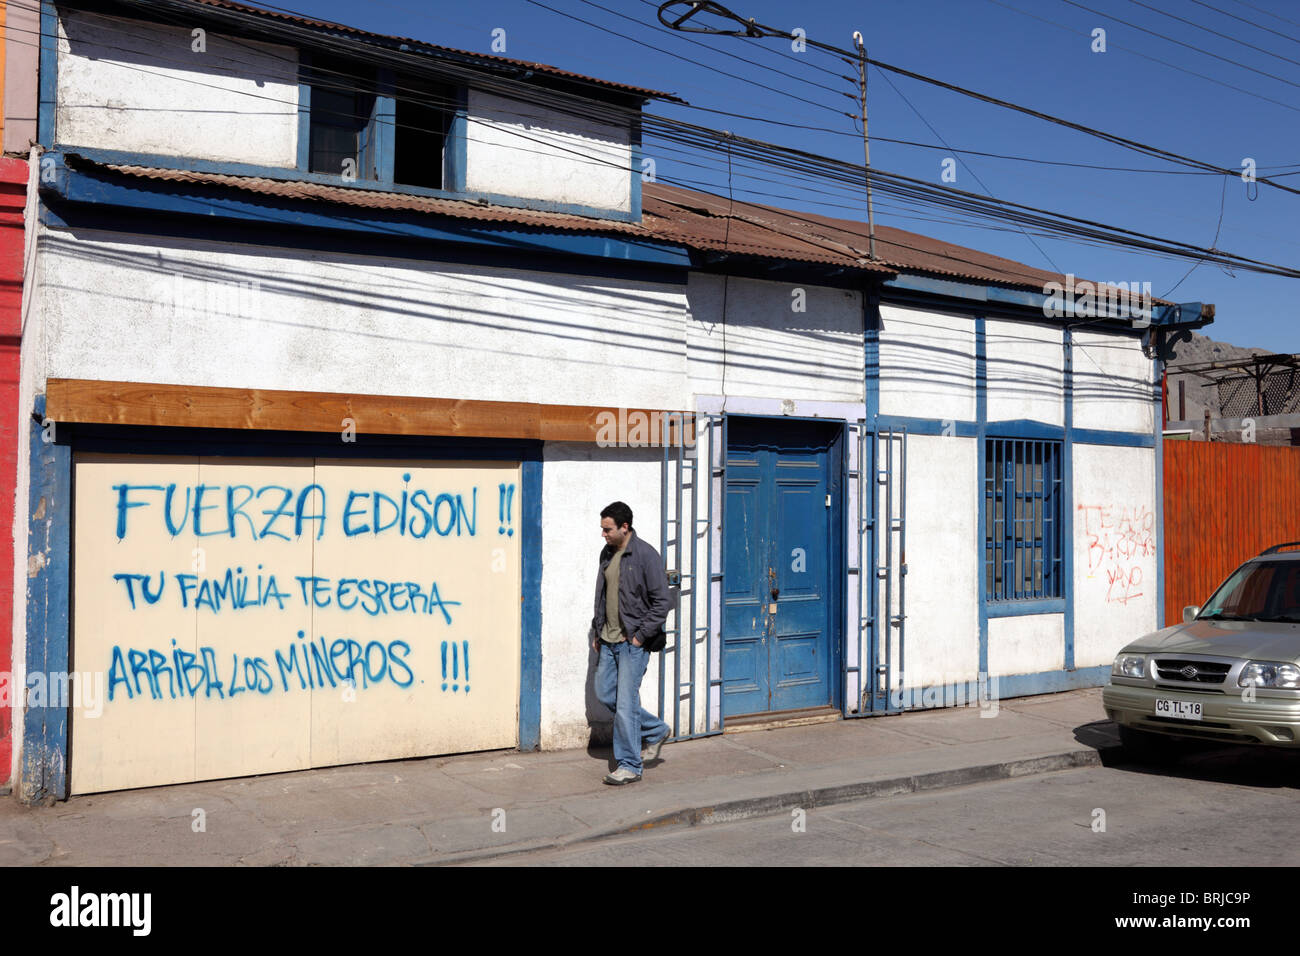 Message Of Support For Trapped Miner Edison Peña From His Family Painted On Garage  Door Of House, Copiapo , Region III , Chile